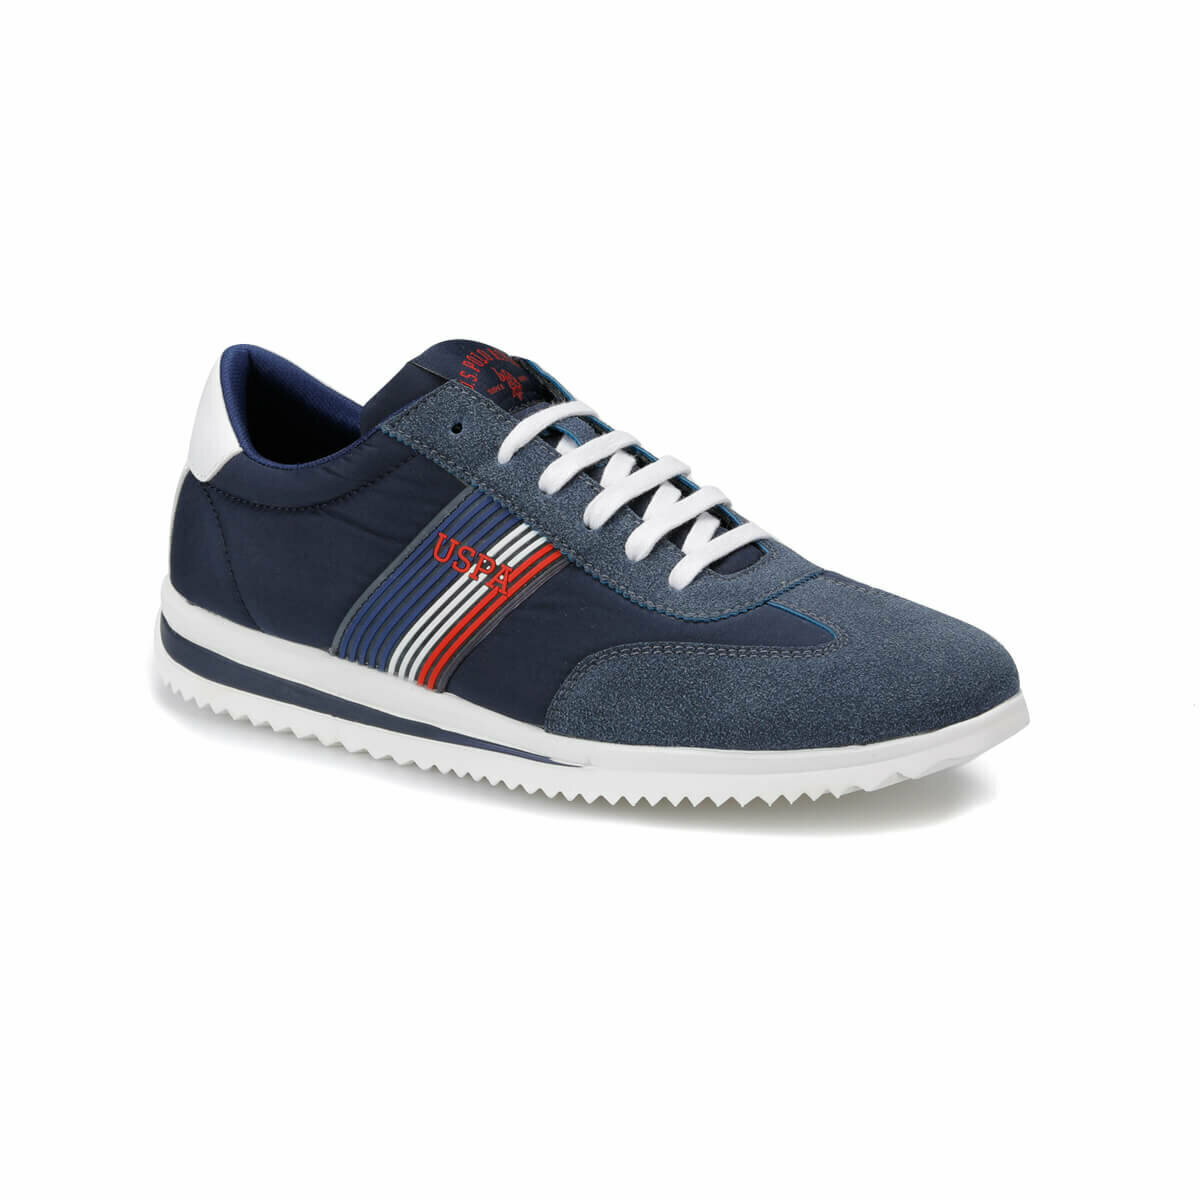 FLO COSTA Navy Blue Men 'S Sneaker Shoes U.S. POLO ASSN.